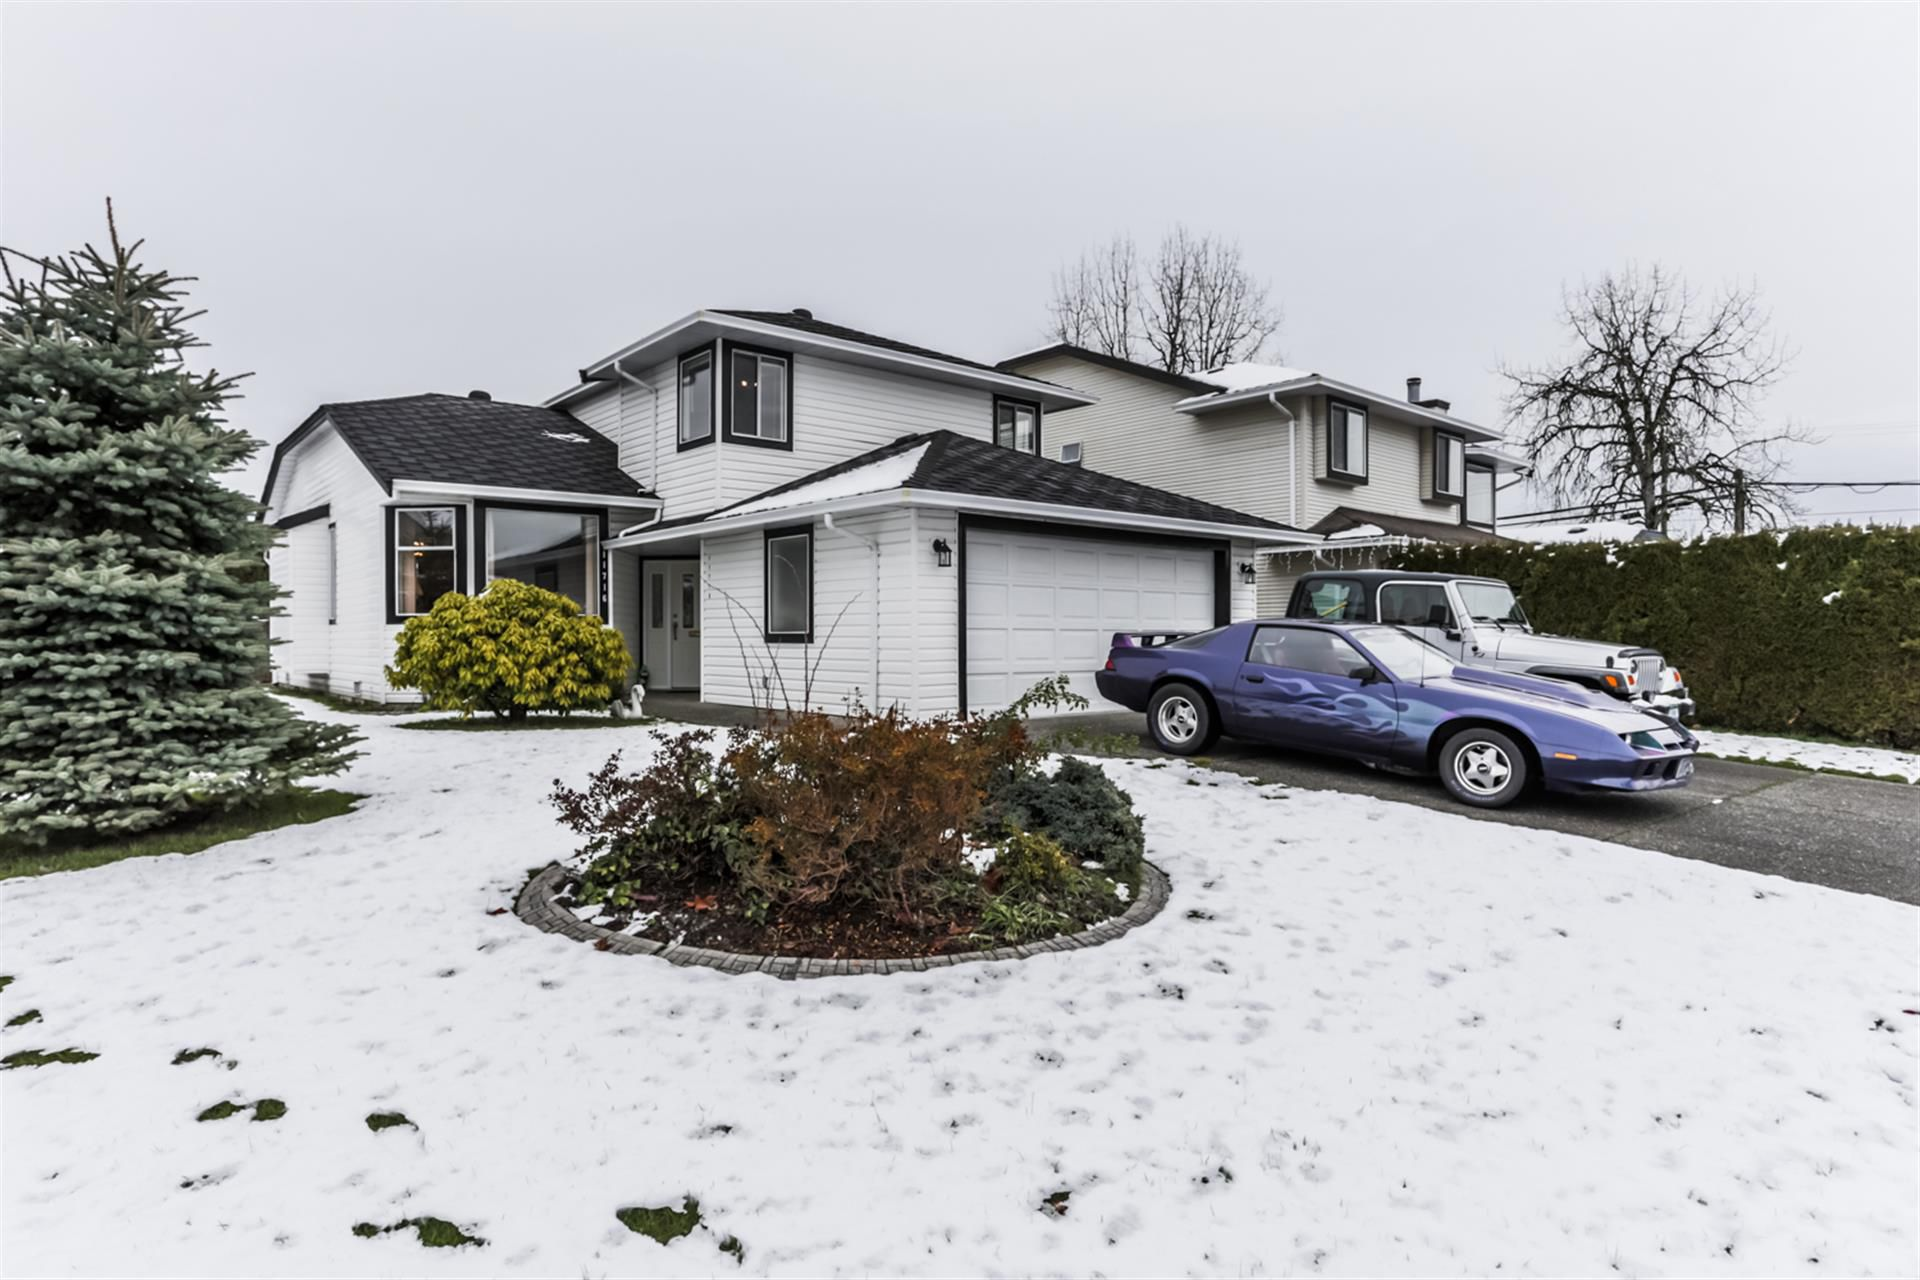 Main Photo: 11716 231B Street in Maple Ridge: East Central House for sale : MLS®# R2229621